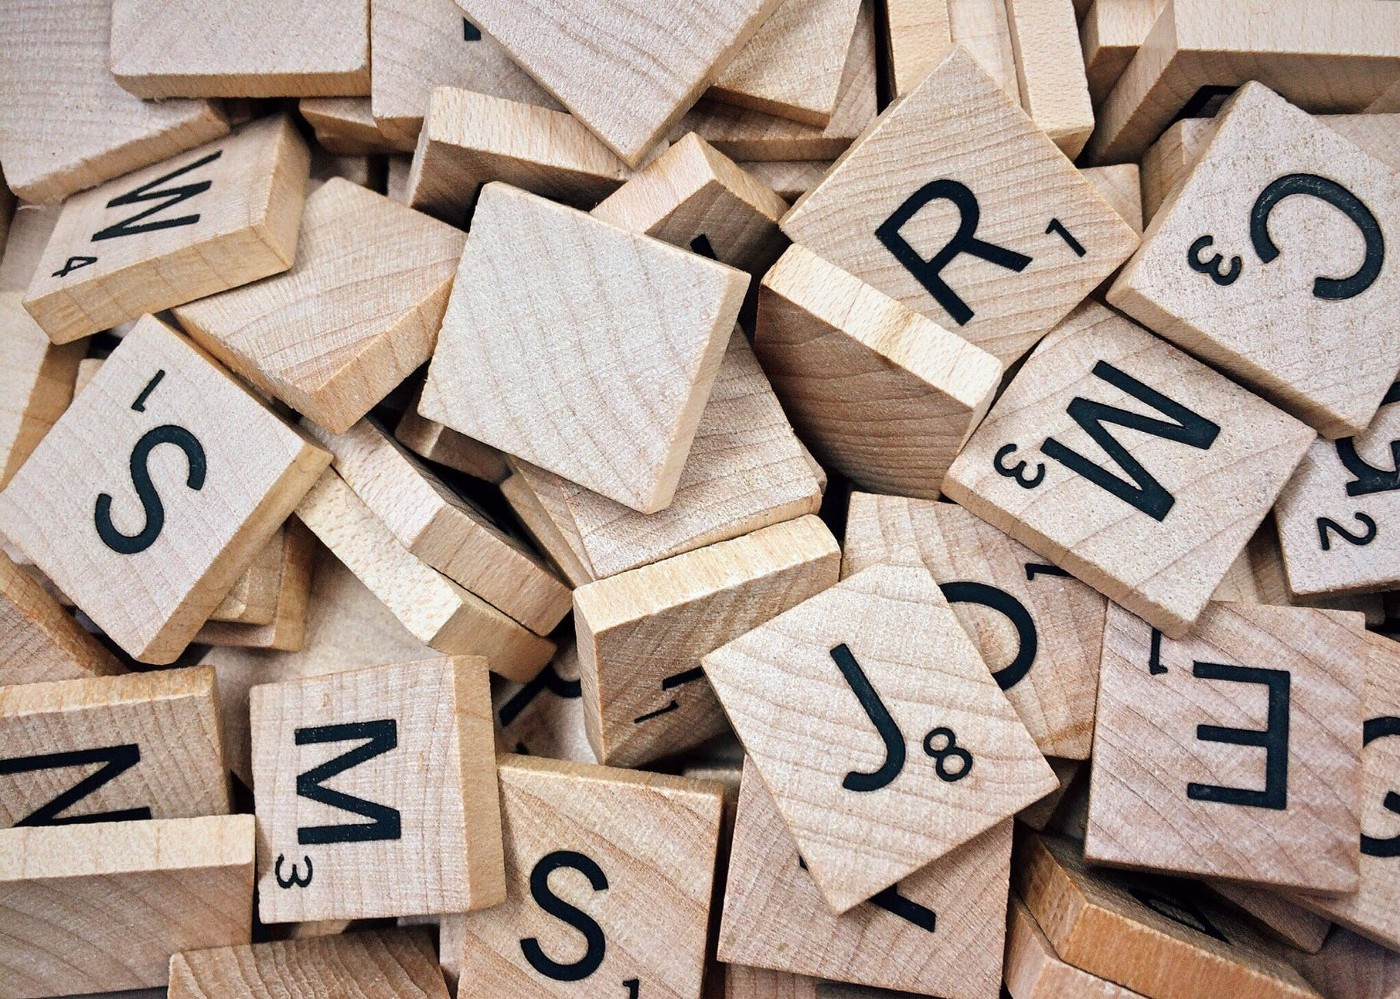 Wooden tiles with letters printed on them.